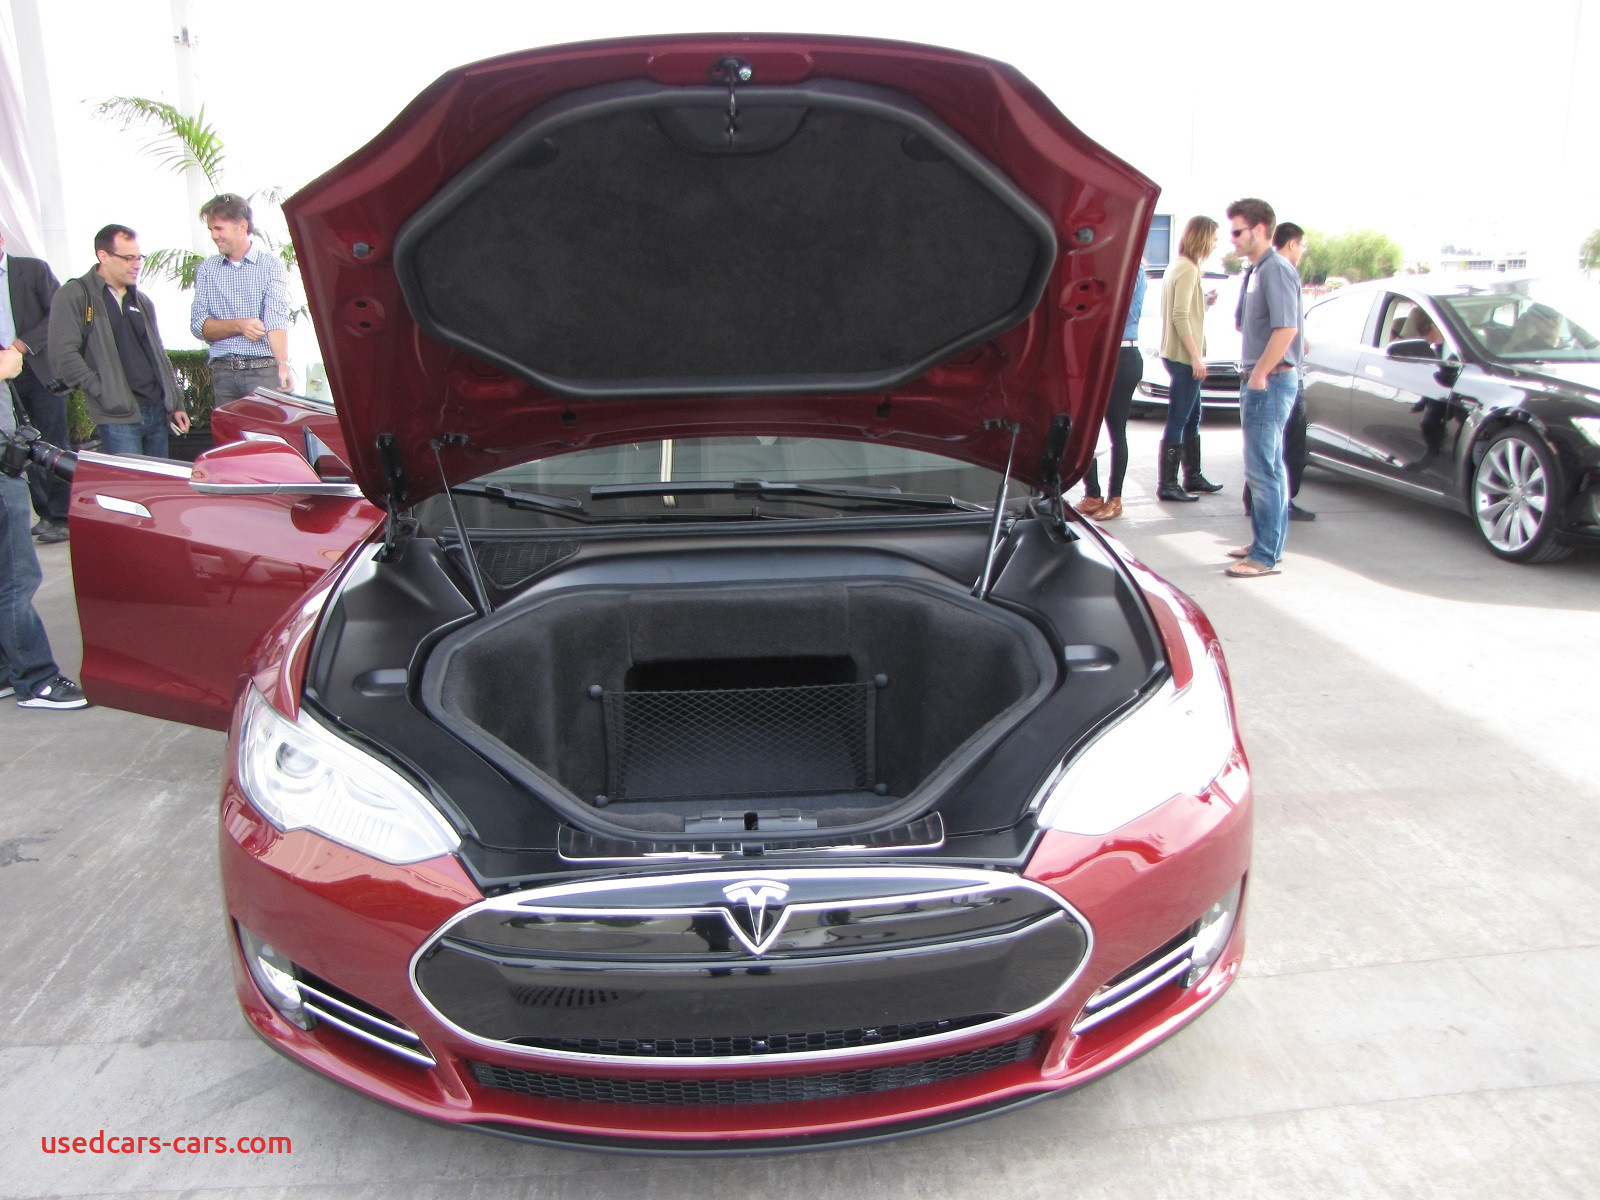 How Much Tesla Model S Best Of How Much Space is there Inside A 2012 Tesla Model S Anyway